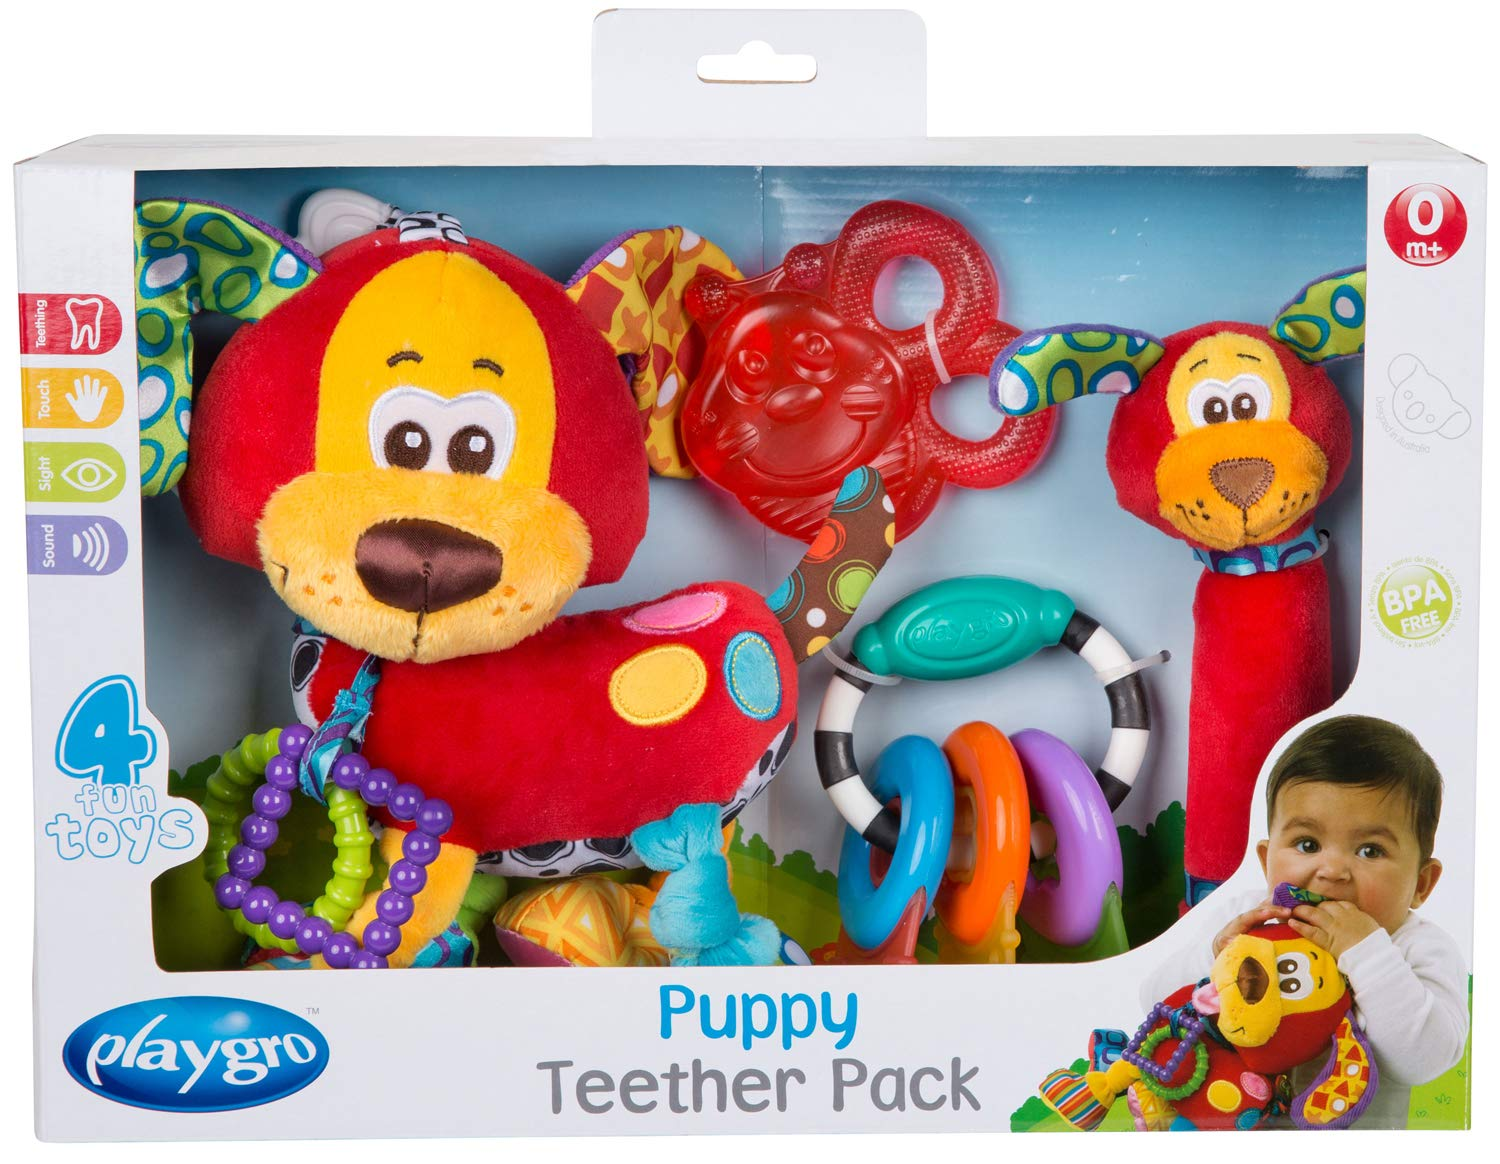 Playgro 0183171 - Set de mordedores, diseño Puppy product image